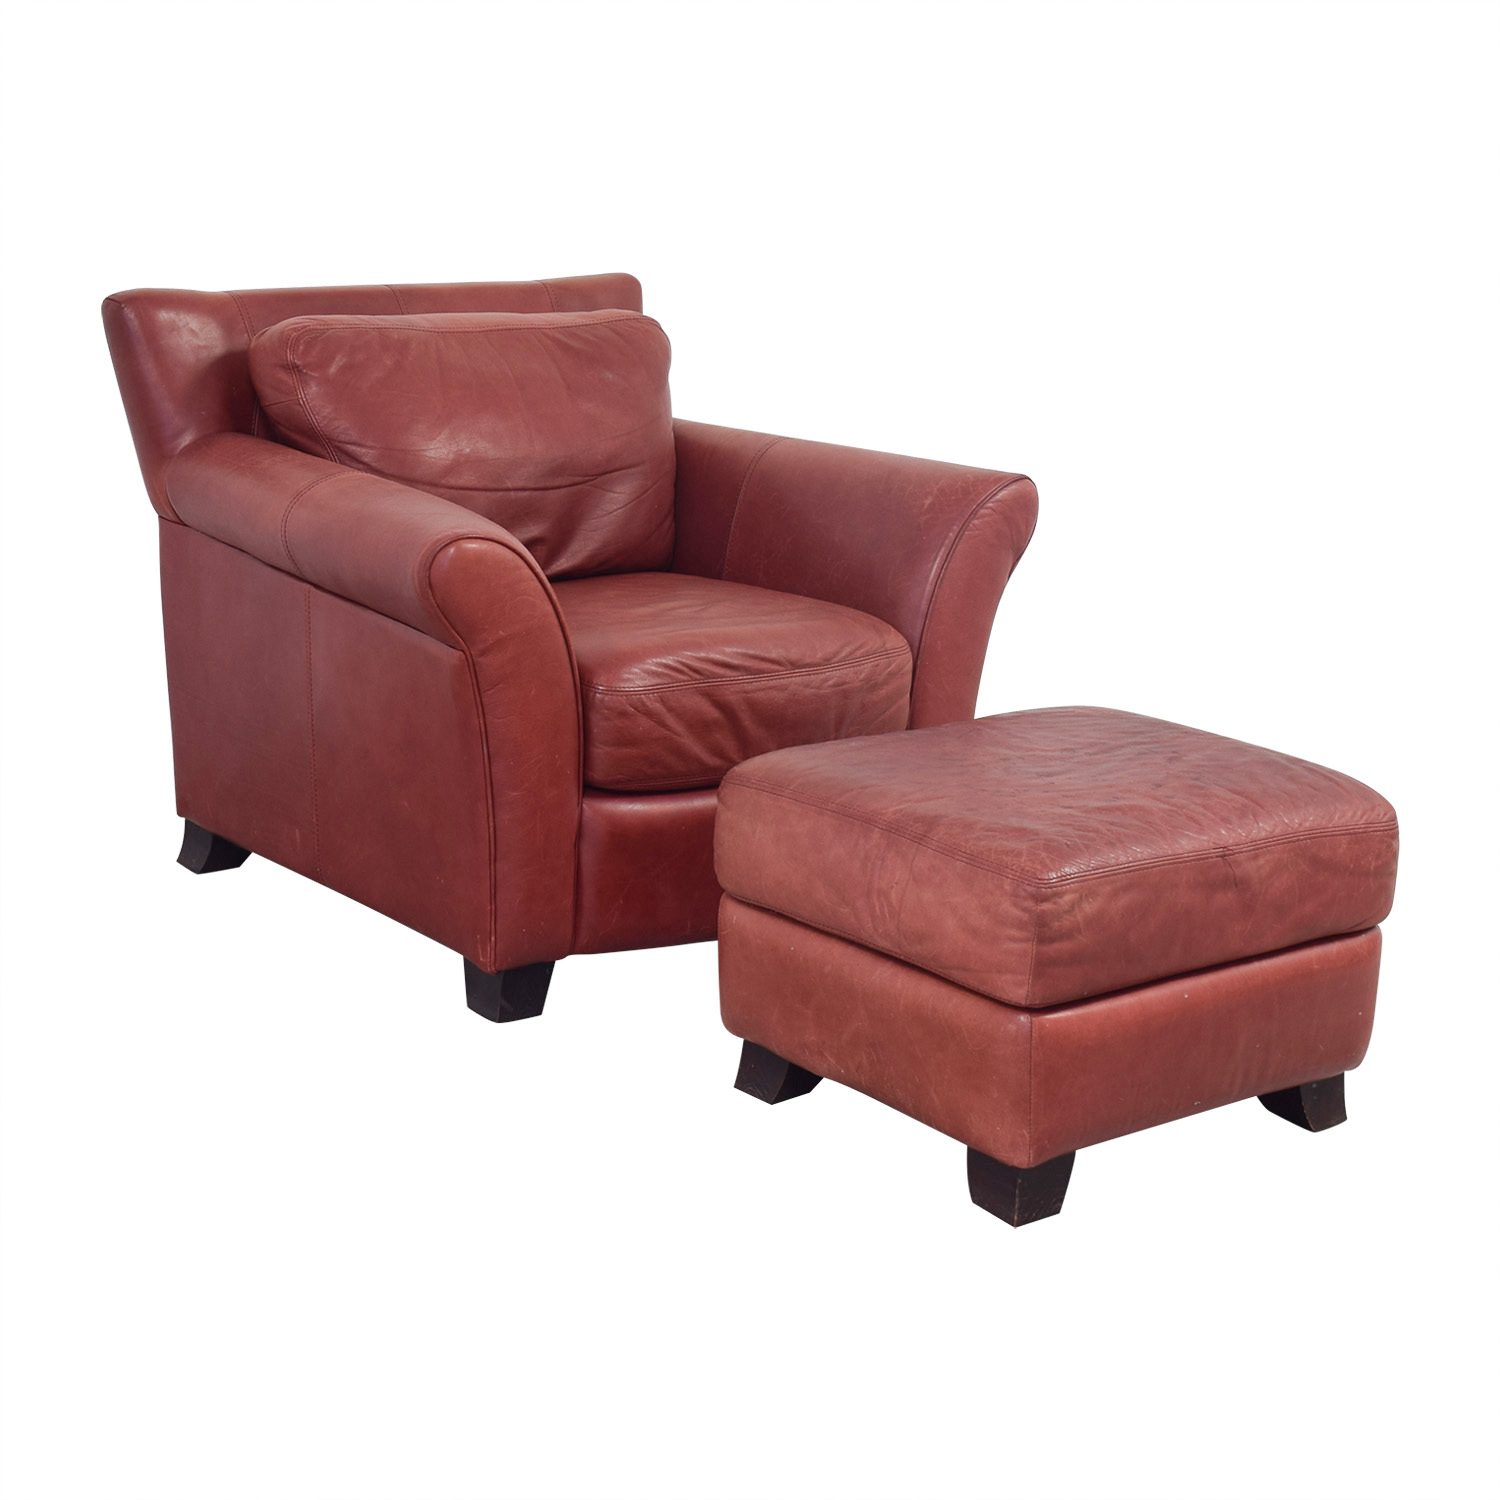 Small Red Leather Accent Chair: Palliser Palliser Red Leather Chair And Ottoman